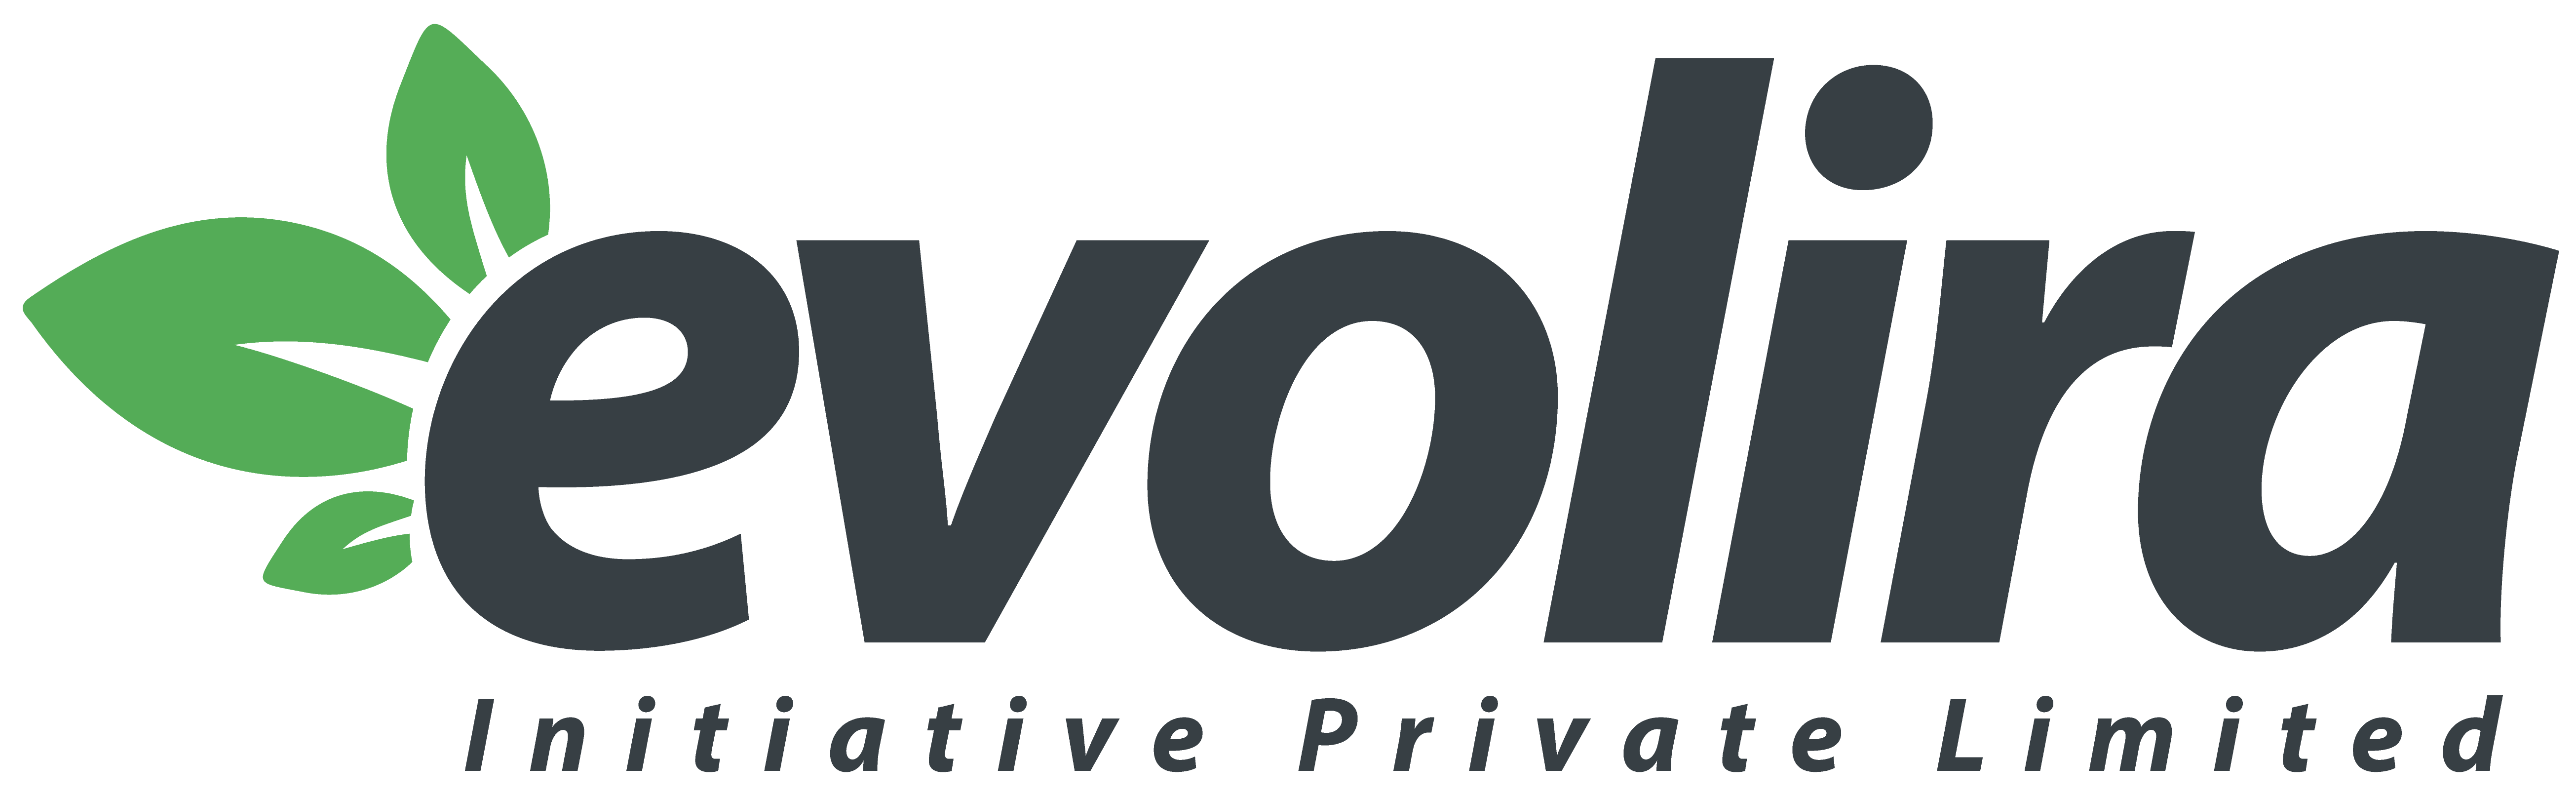 EVOLIRA INITIATIVE PVT LTD